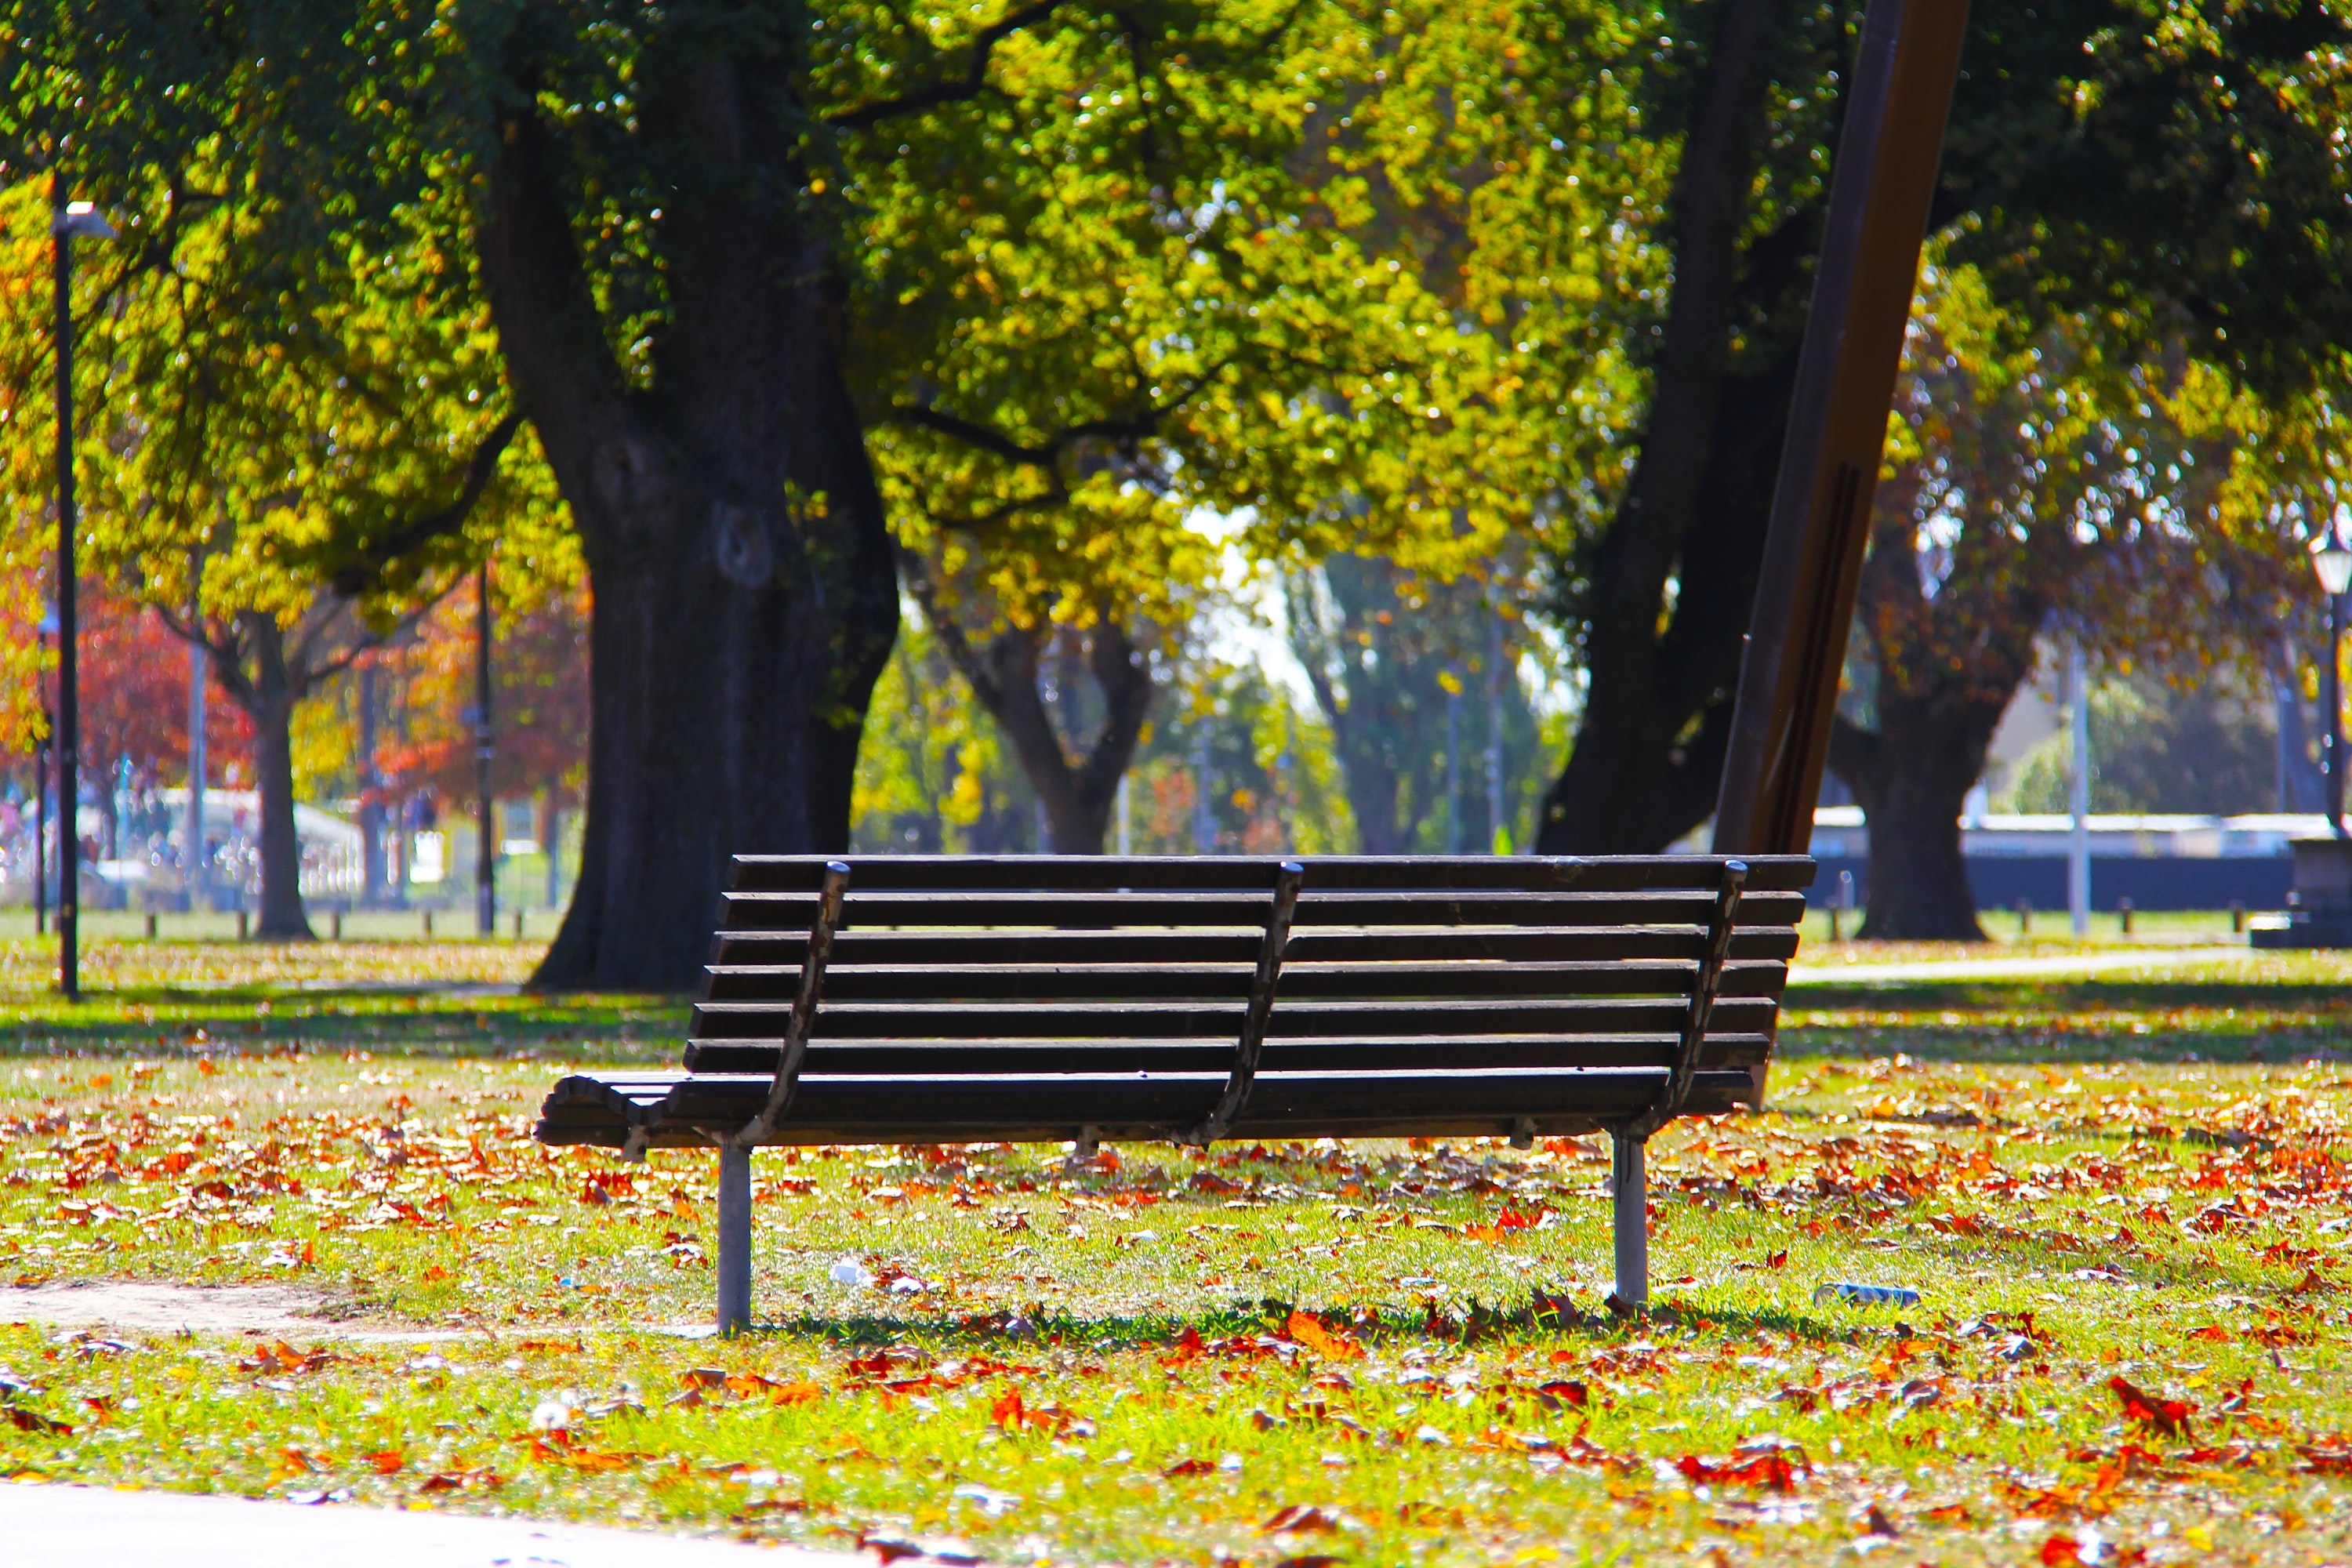 Black Wooden Bench on Green Grass, Autumn, Outdoors, Trees, Seat, HQ Photo